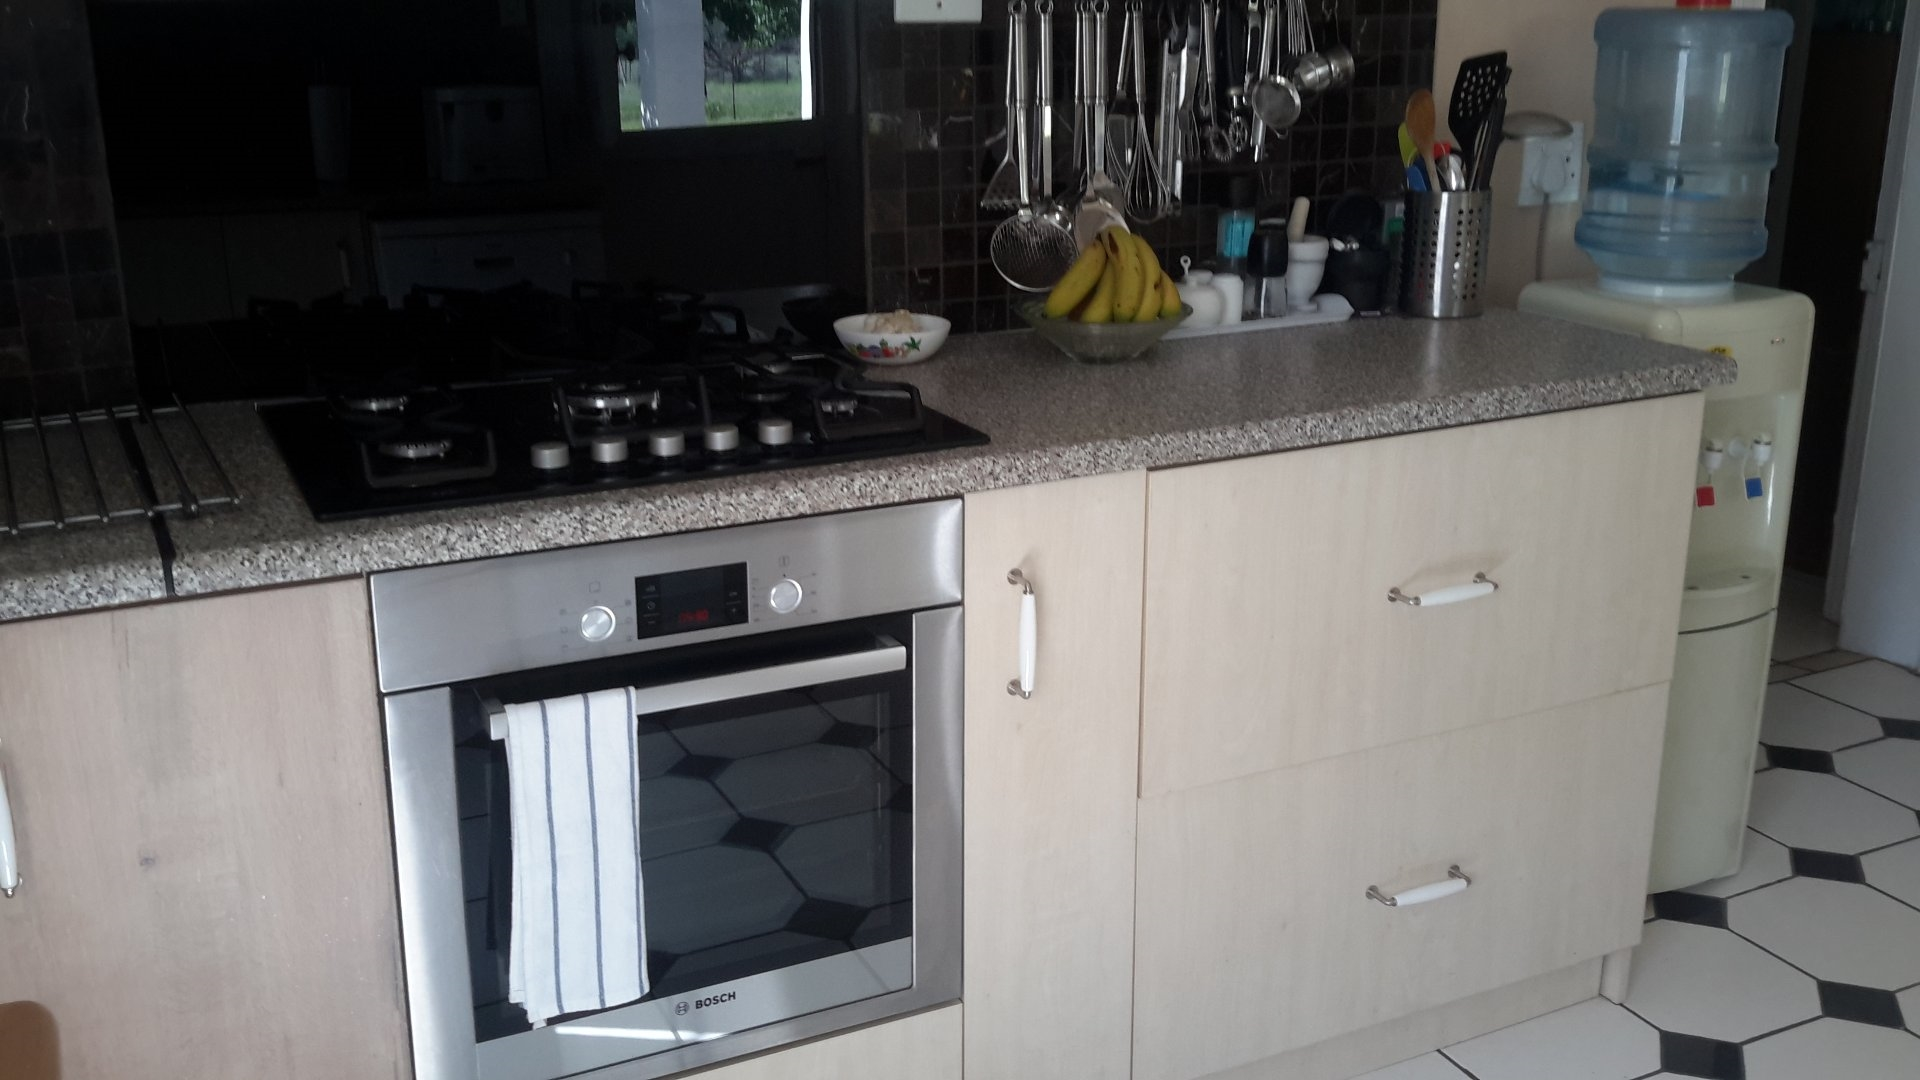 The oven is an electric Bosch and the gas hob an AEG with the fridge being a Samsung